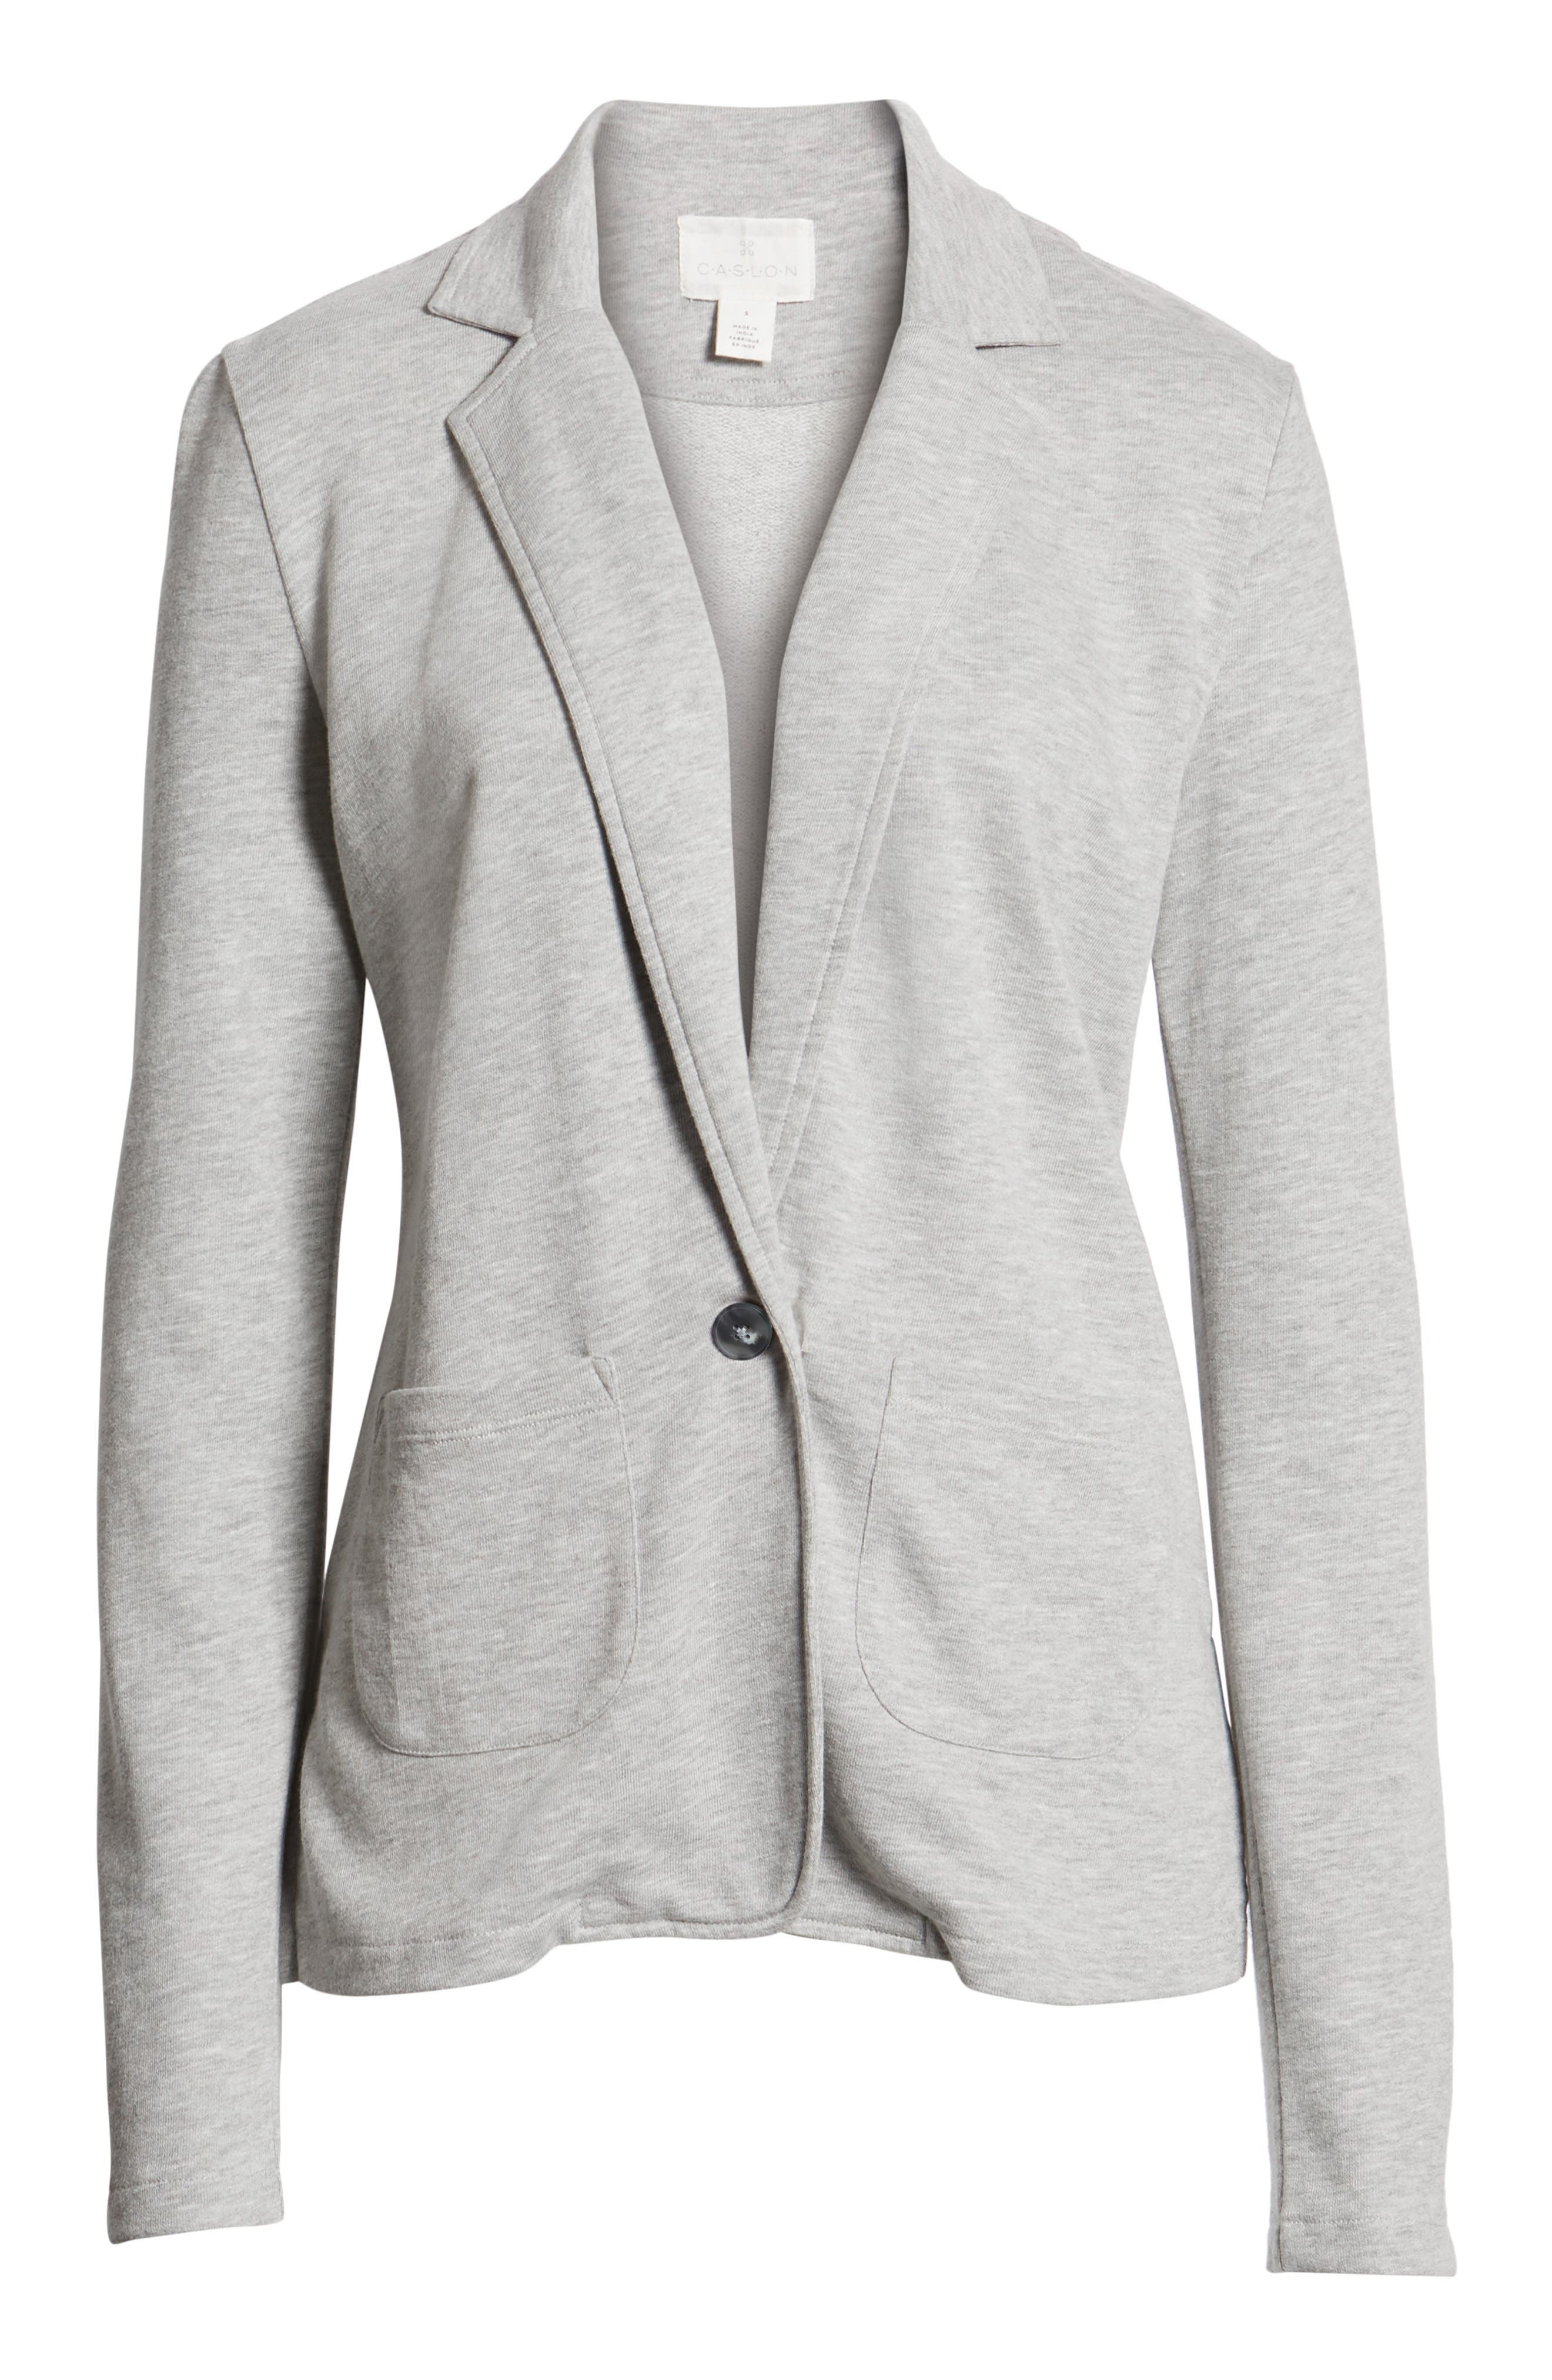 Two Pocket Knit Blazer,                             Alternate thumbnail 6, color,                             GREY HEATHER